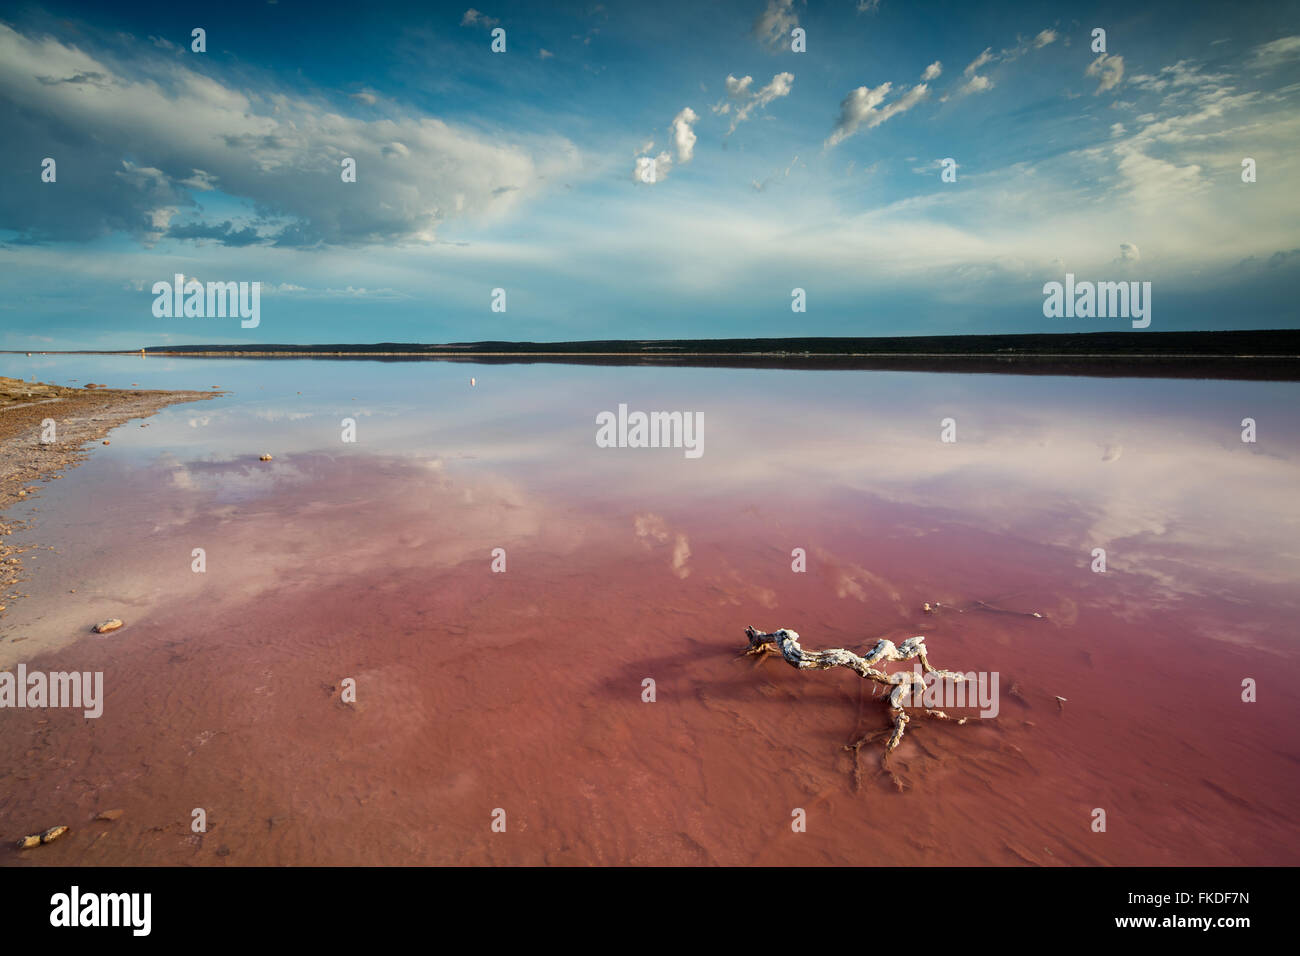 the pink lagoon at Port Gregory, West Australia - Stock Image